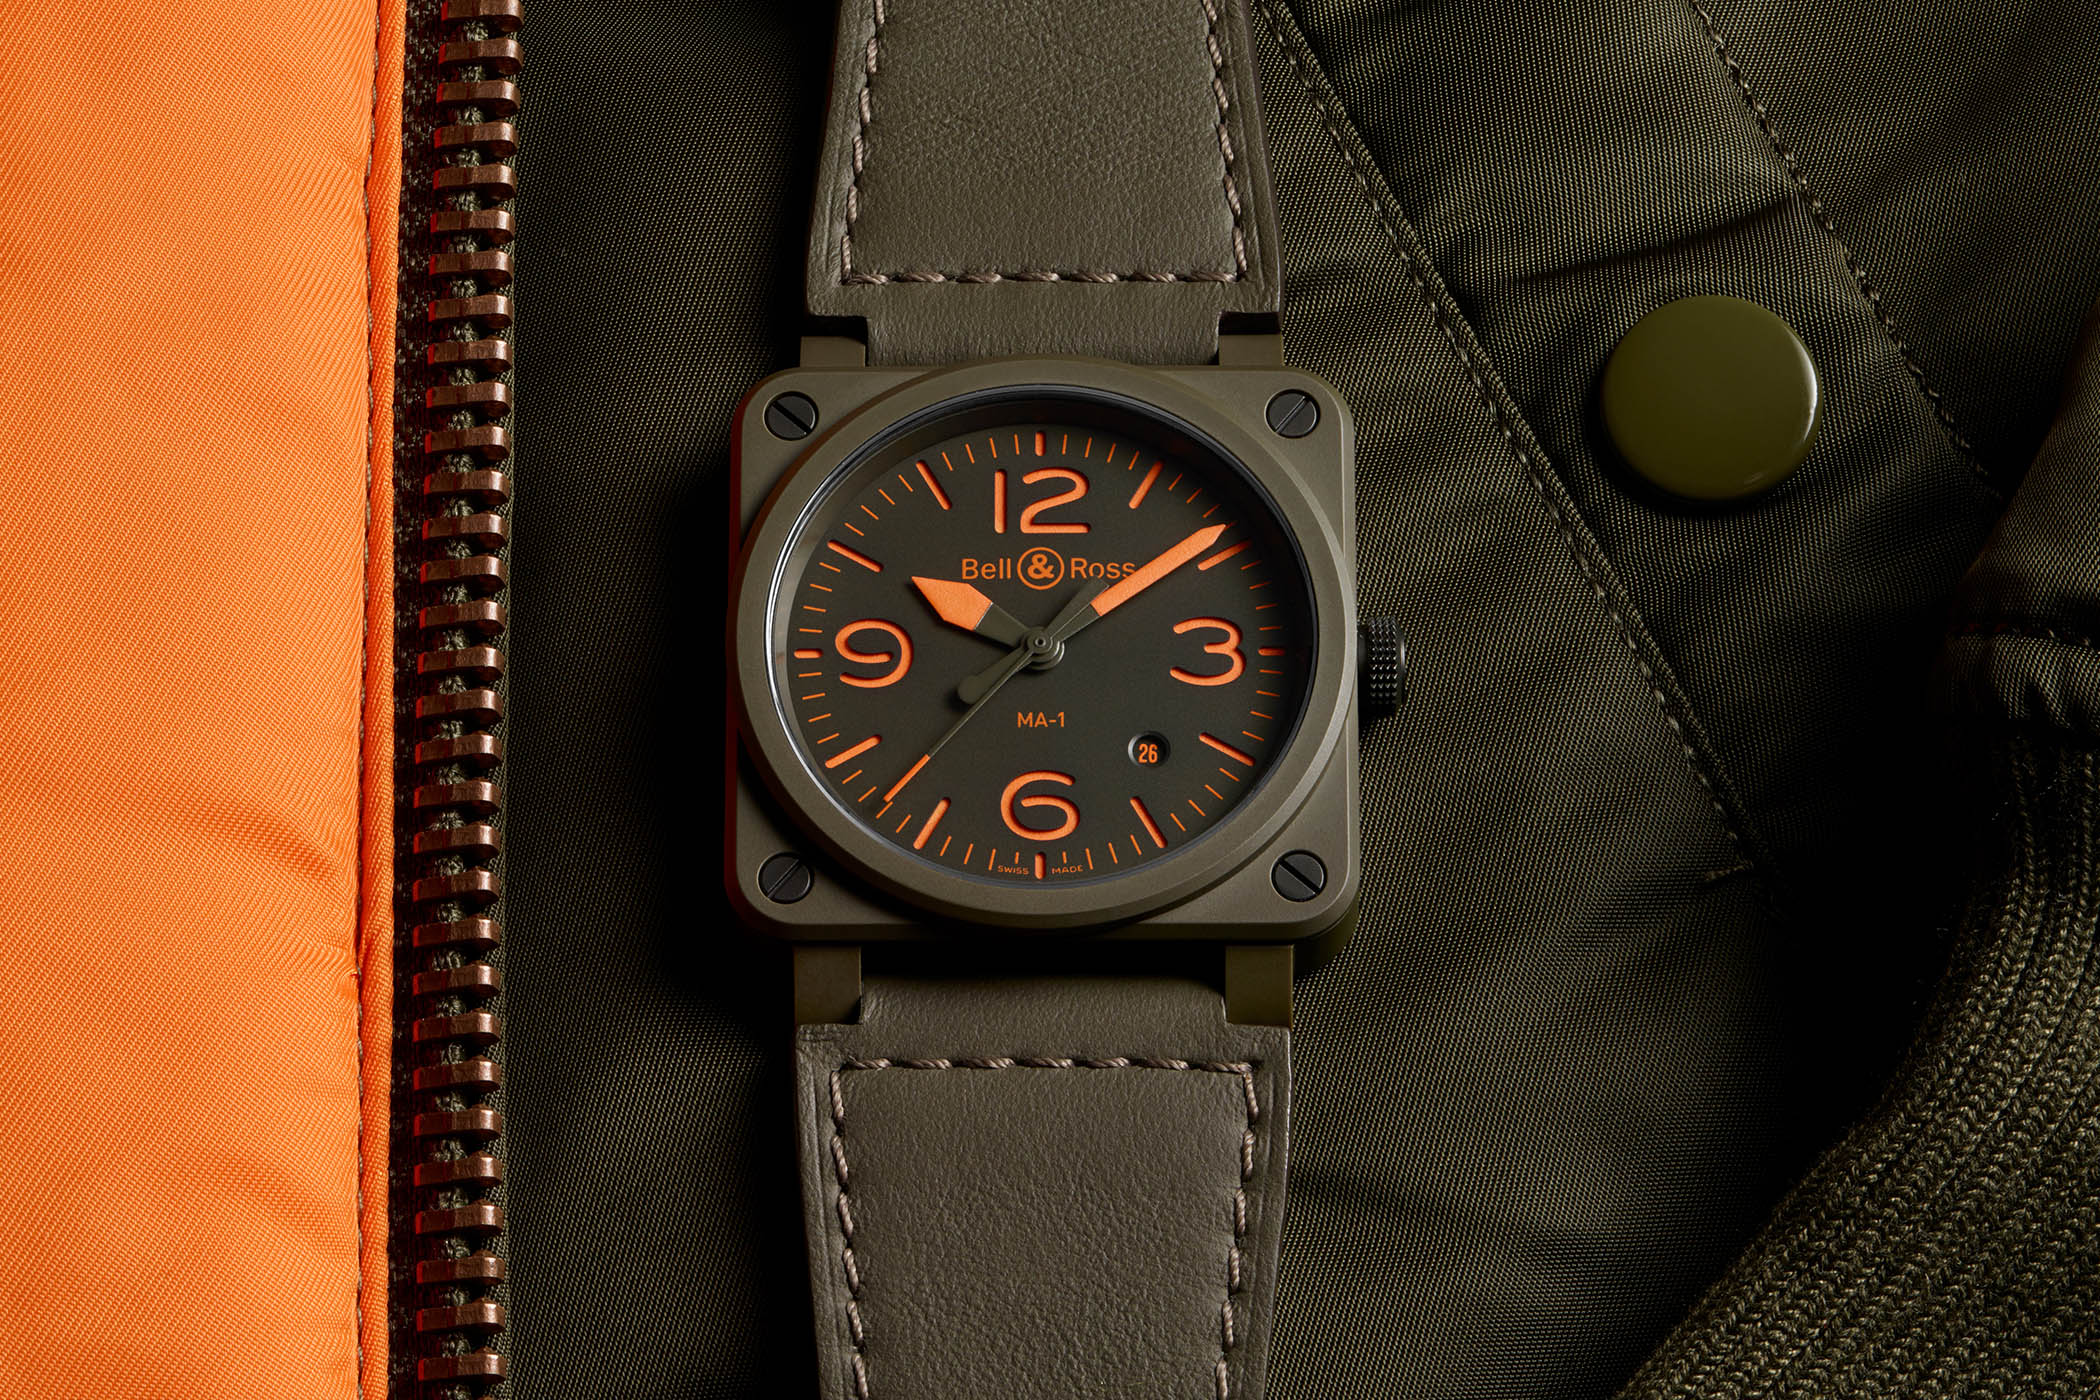 Baselworld 2019 Bell Ross Br 03 92 Ma 1 Specs Price